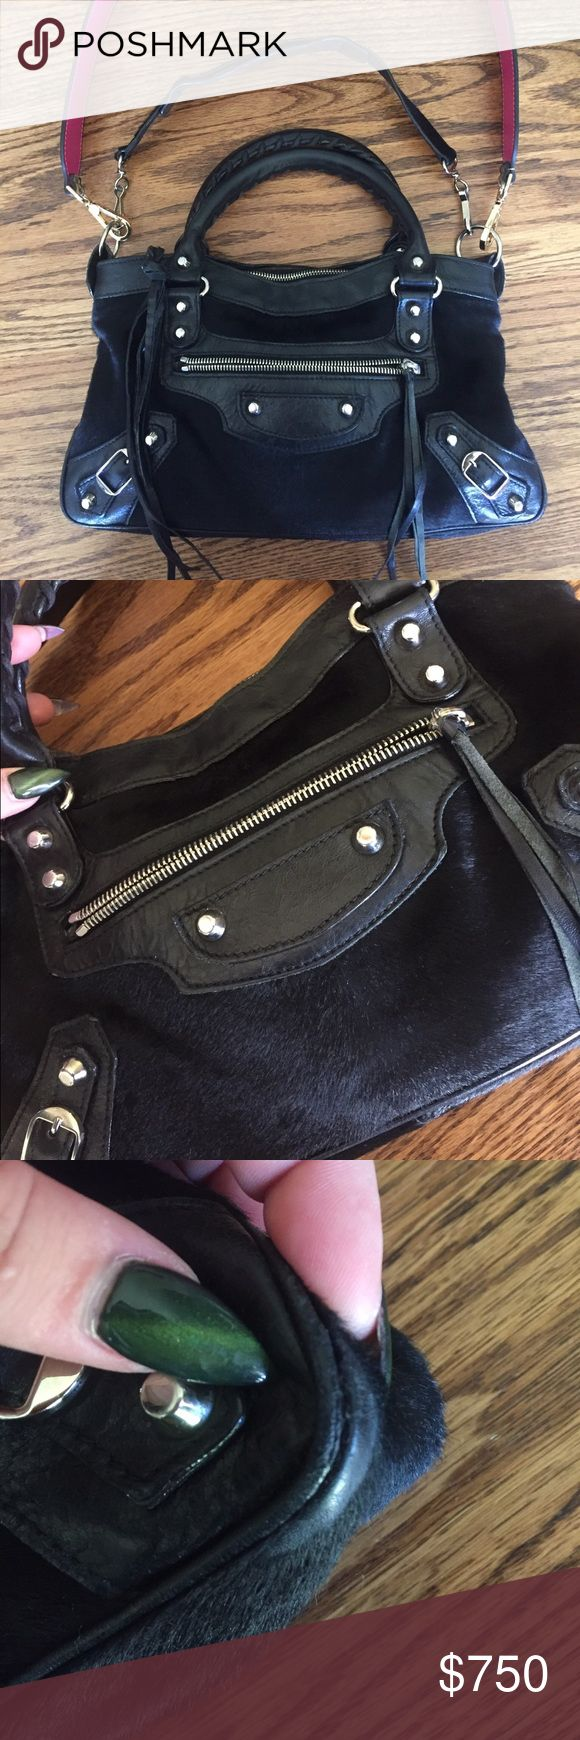 Black pony hair Balenciaga town bag Black with silver hardware. Pony hair. Edges show slight wear as seen in pictures. Authentic. Comes with mirror and its strap. I just don't use it as much as I thought I would. Balenciaga Bags Shoulder Bags